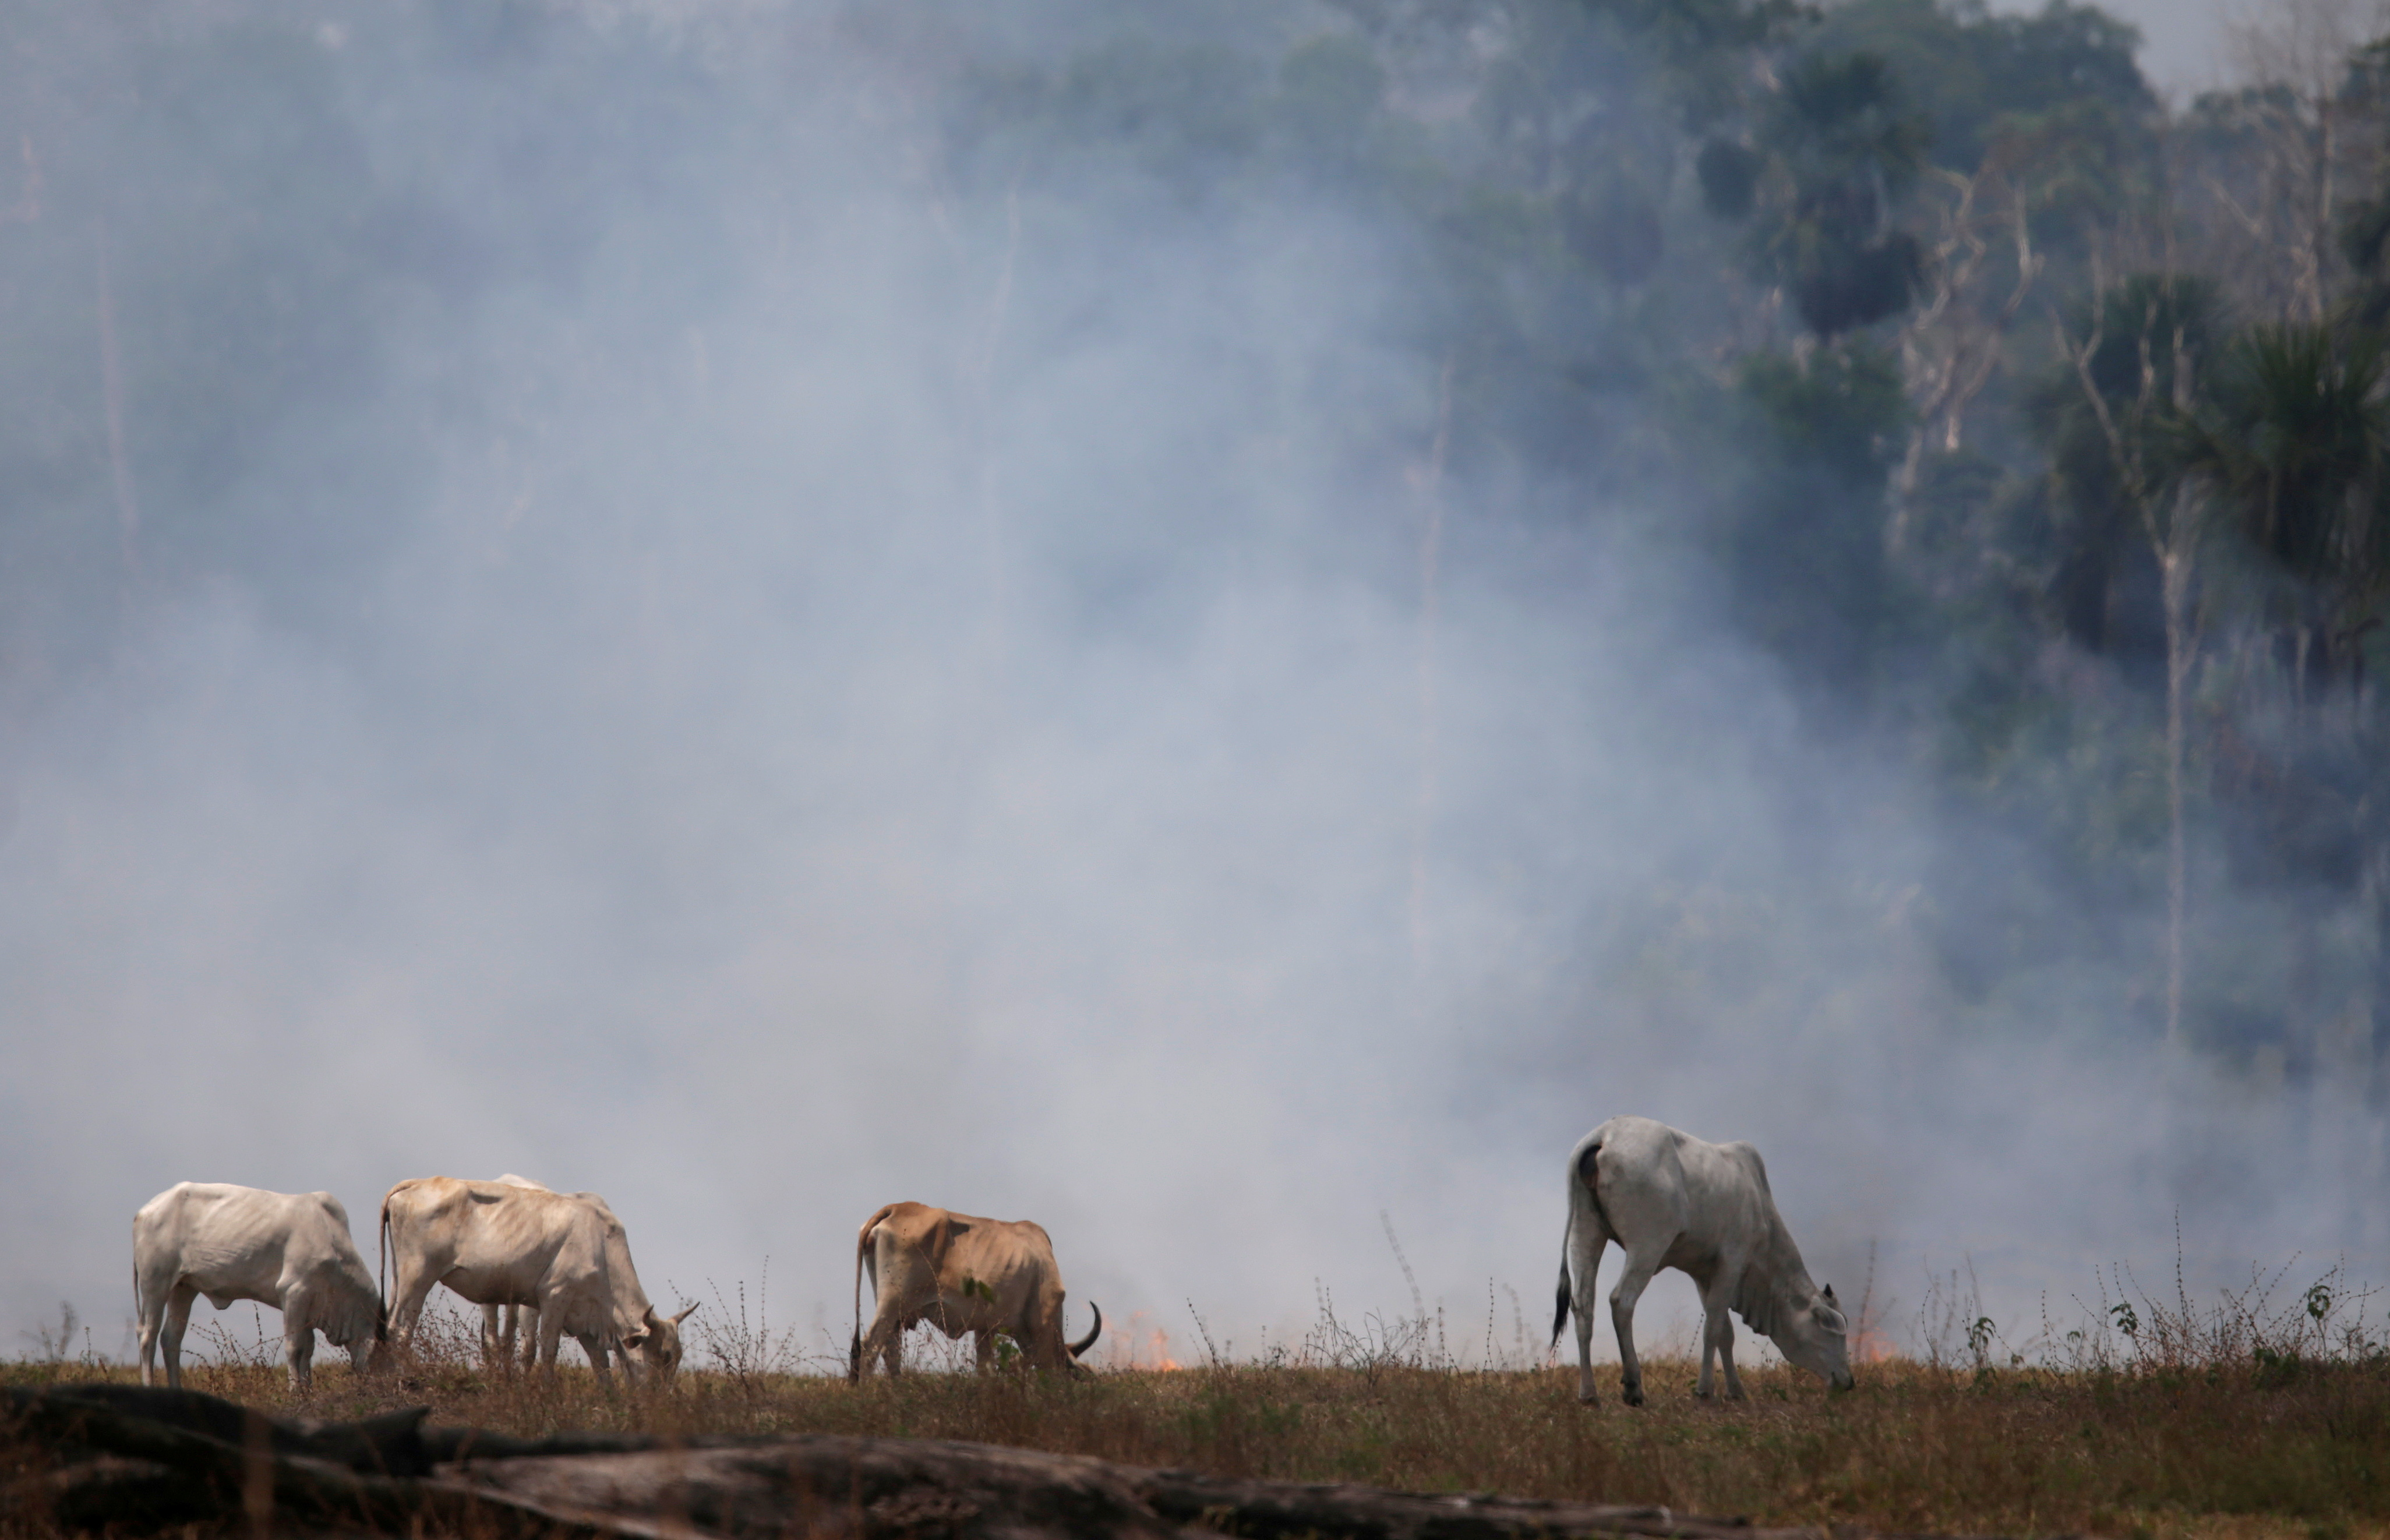 Cattle graze on a smoldering field that was hit by a fire burning a tract of the Amazon forest as it is cleared by farmers, in Rio Pardo, Rondonia, Brazil September 16, 2019. REUTERS/Ricardo Moraes